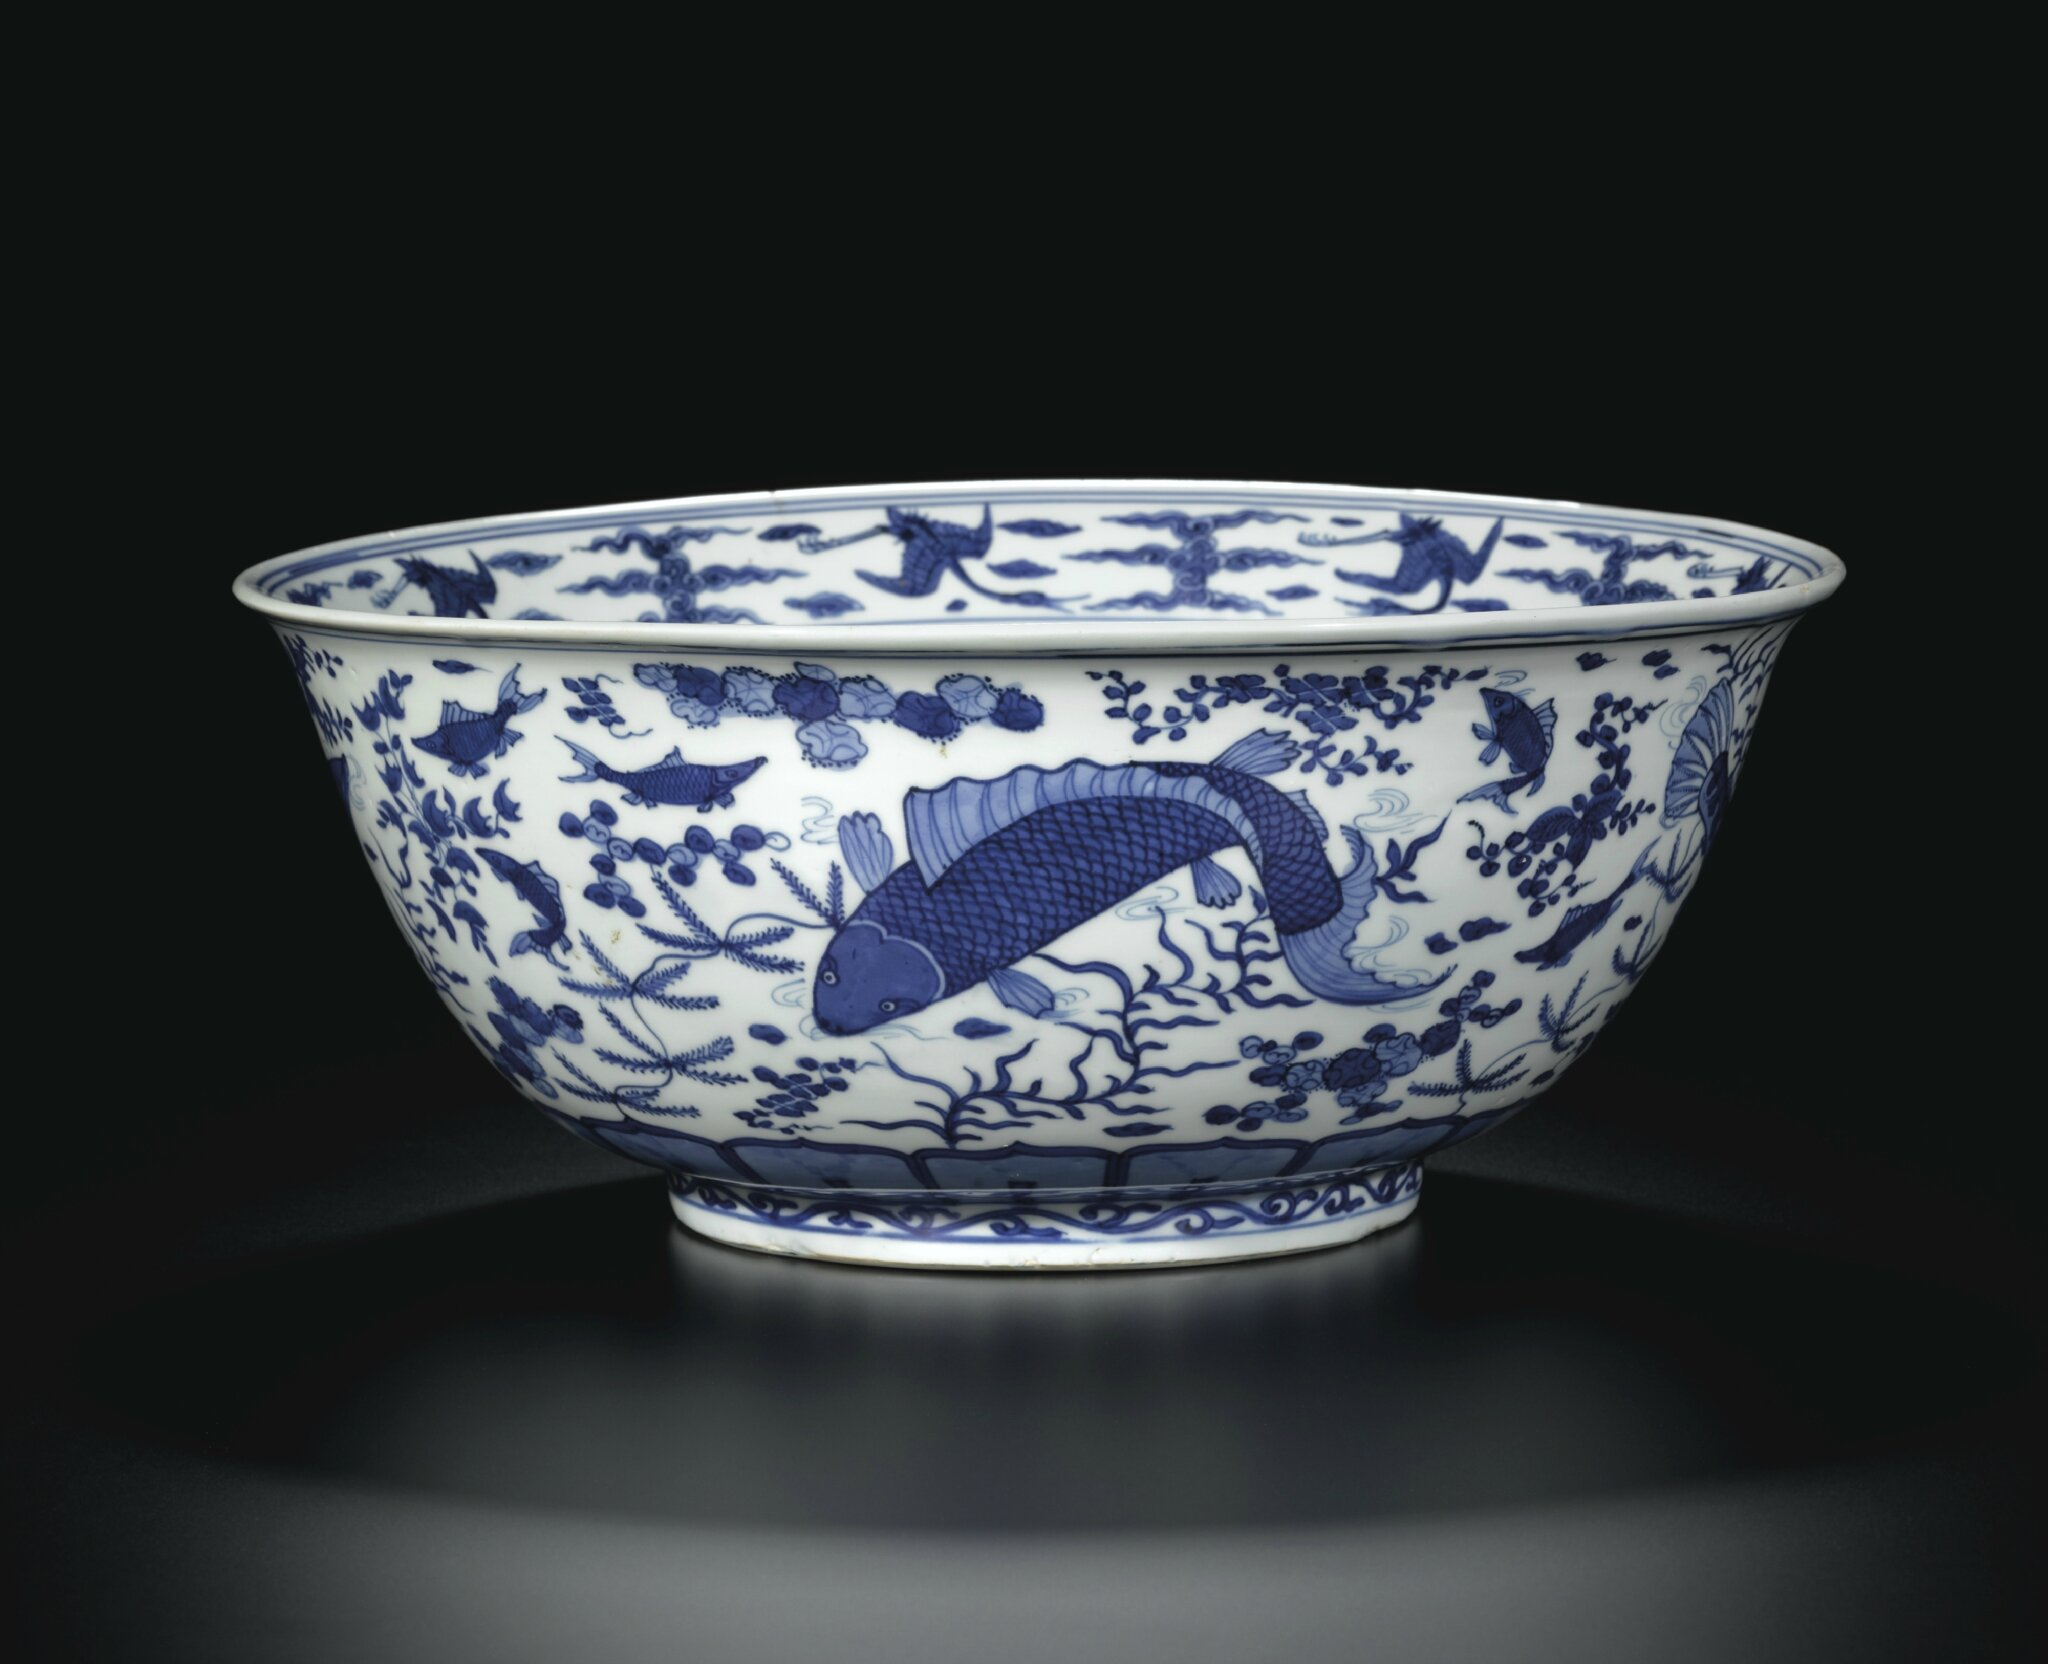 A large blue and white 'Fish' bowl